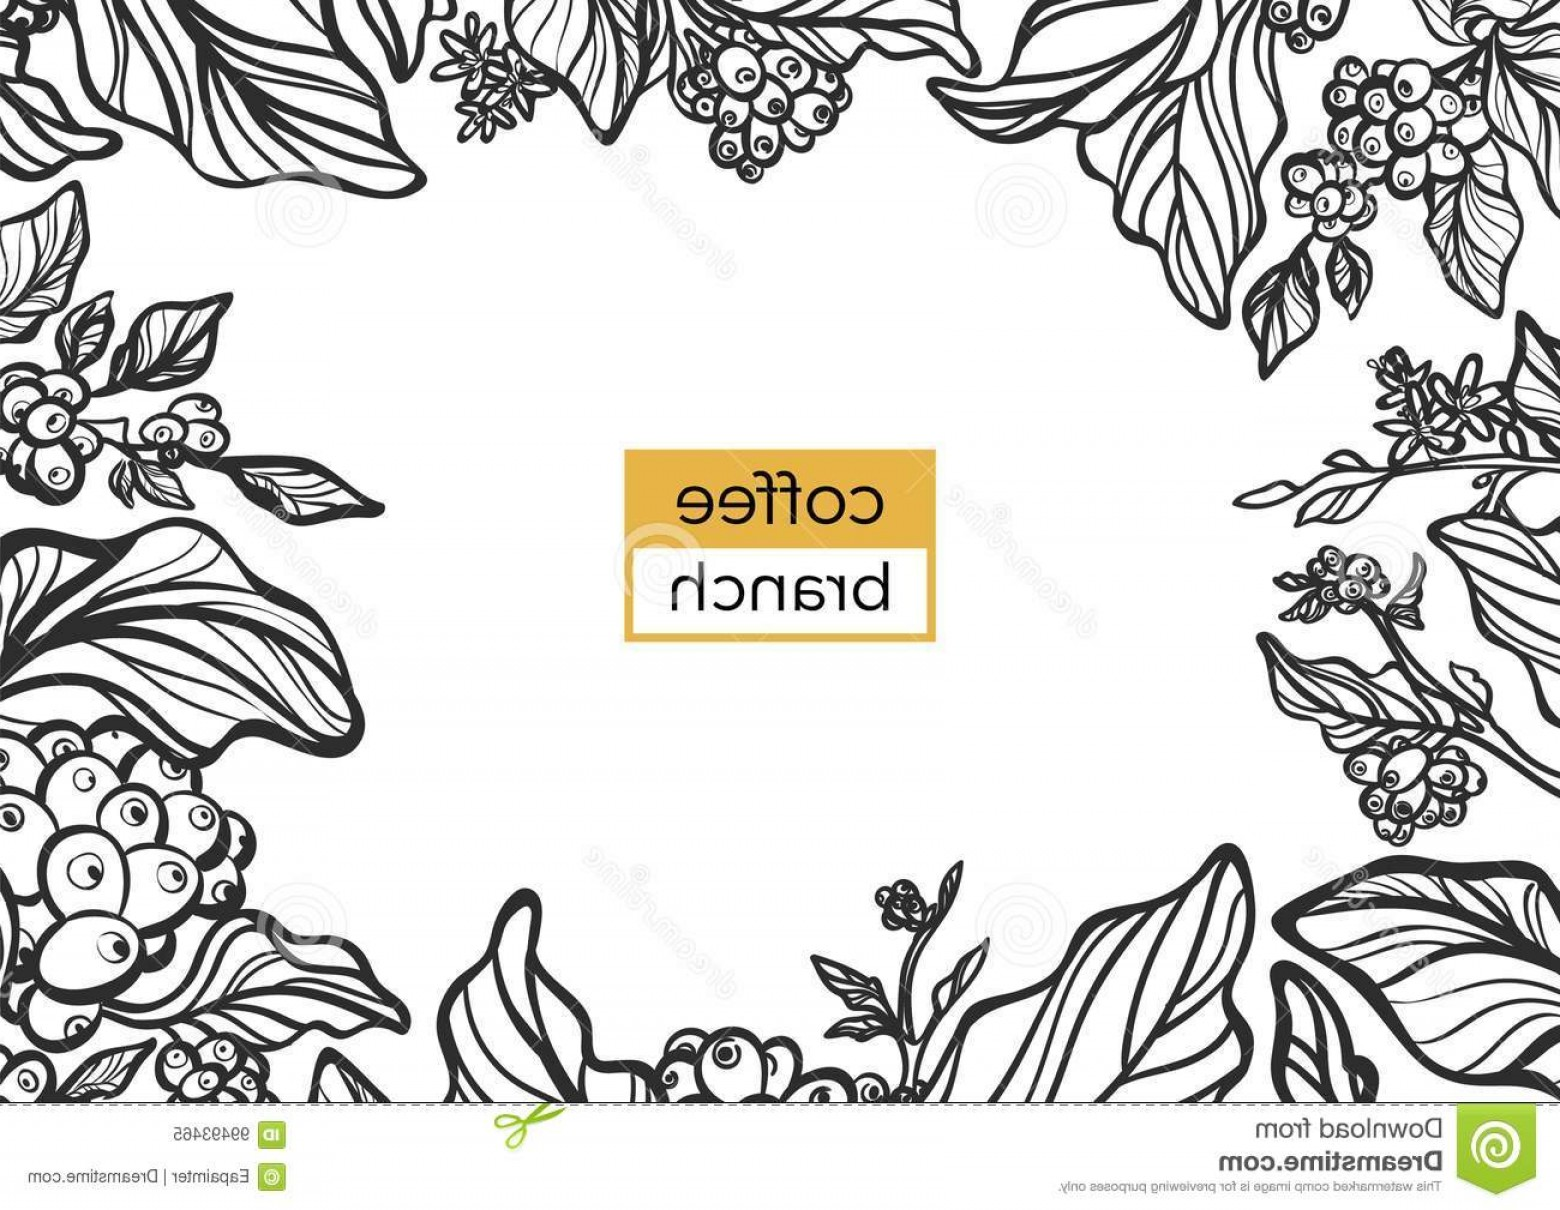 Coffee Tree Vector: Stock Illustration Template Black Branch Coffee Tree Leaves Natural Coffee Beans Template Black Branch Coffee Tree Leaves Image